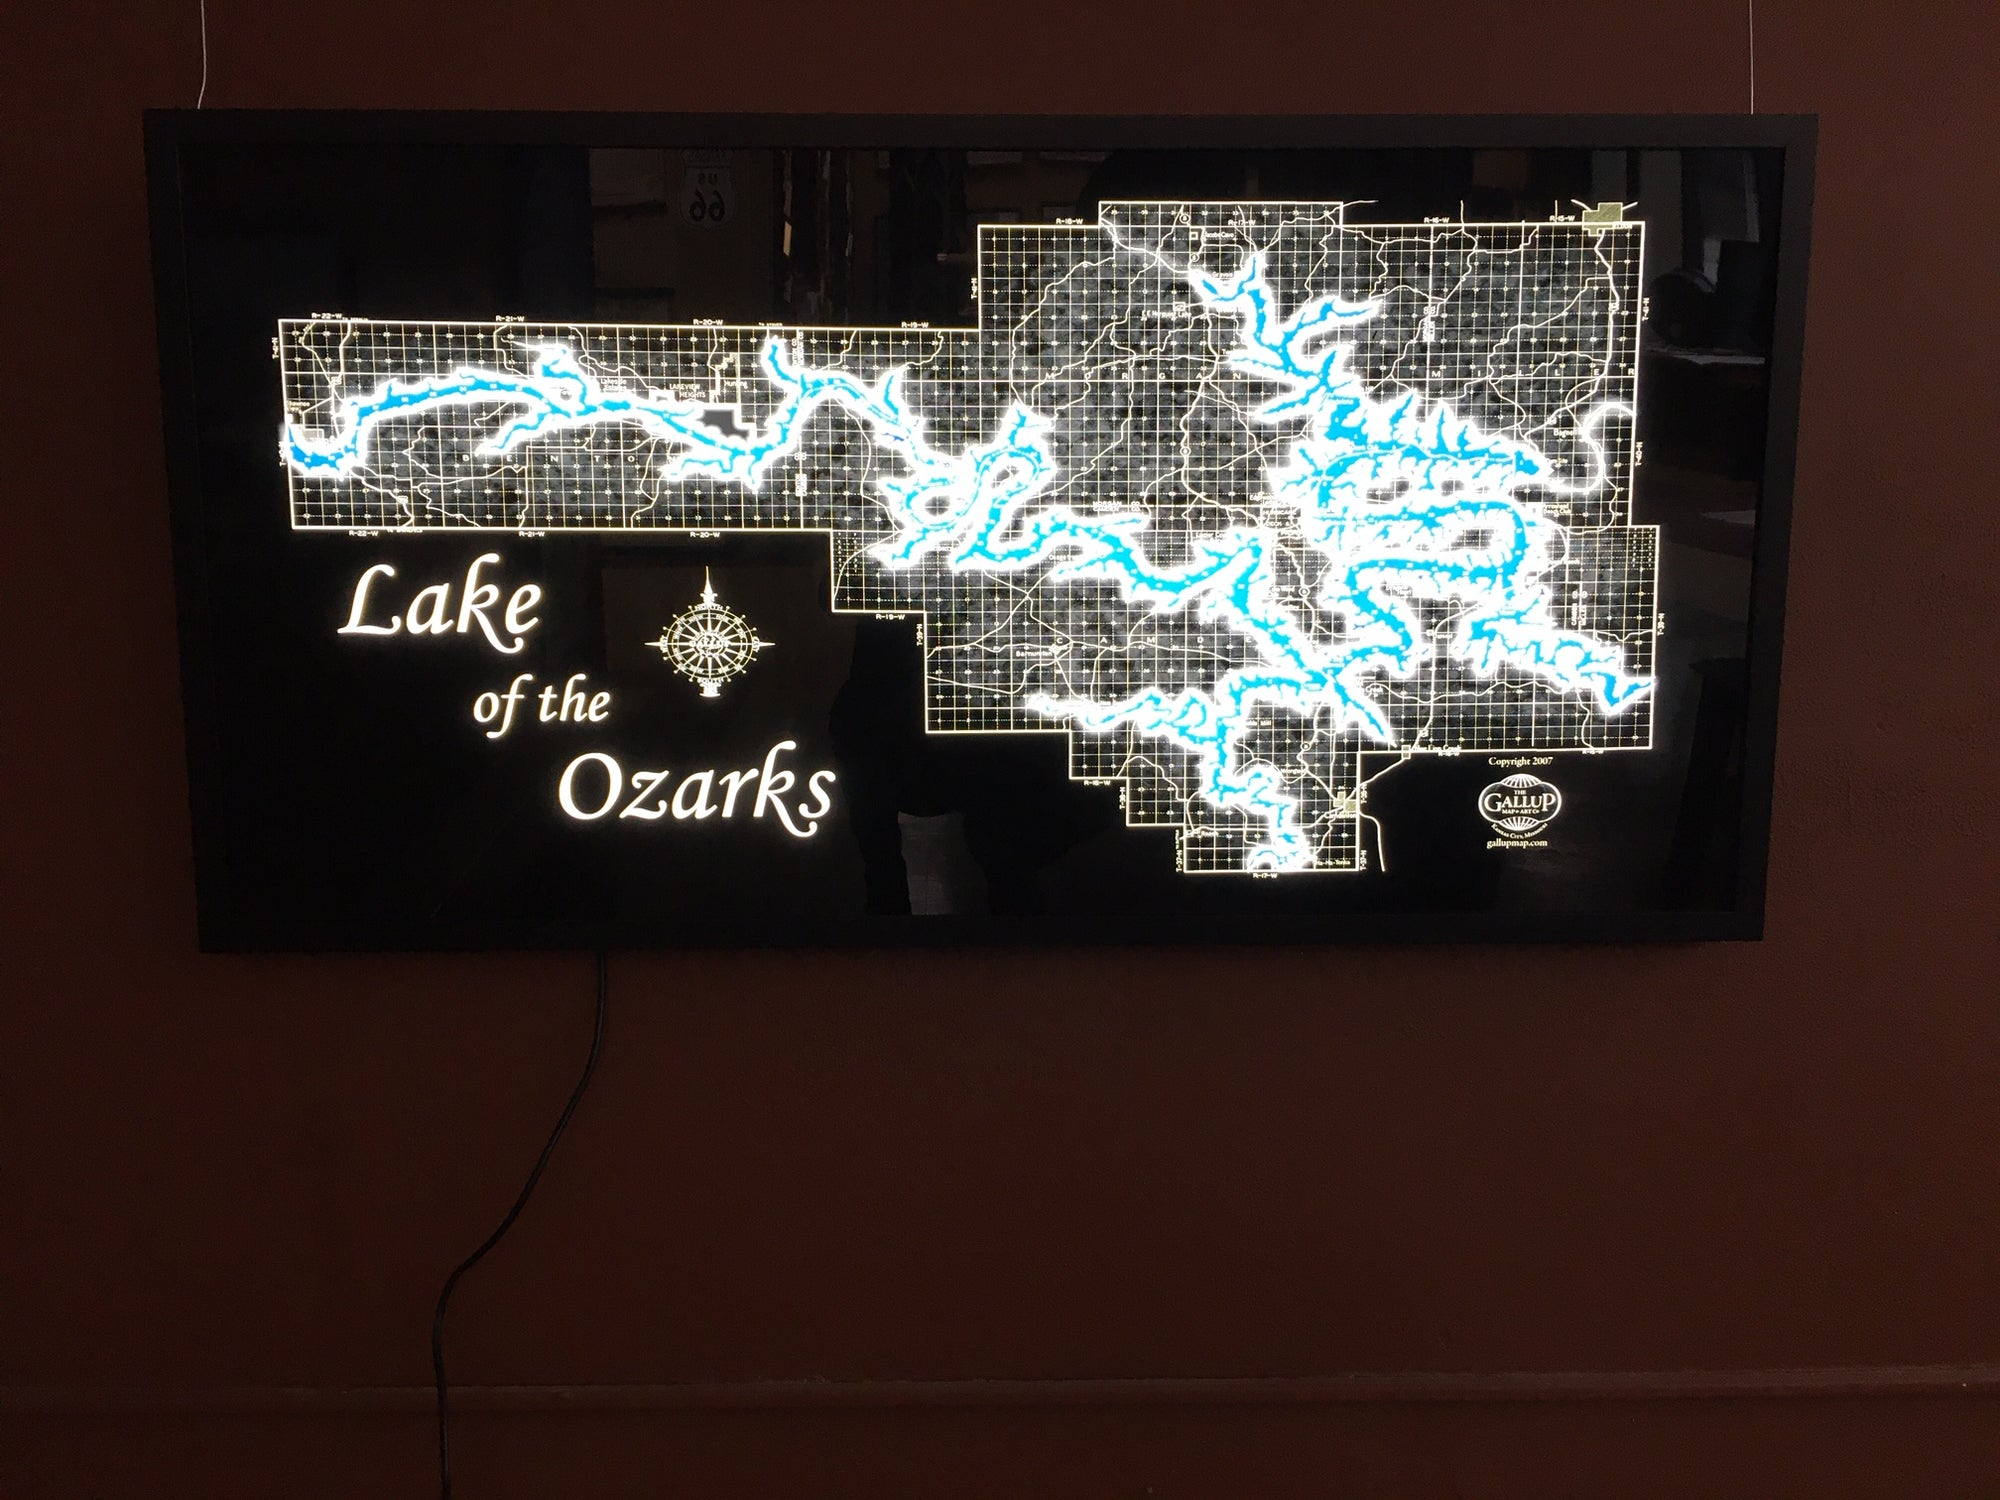 Lake of the Ozarks LED Back-Lit Display